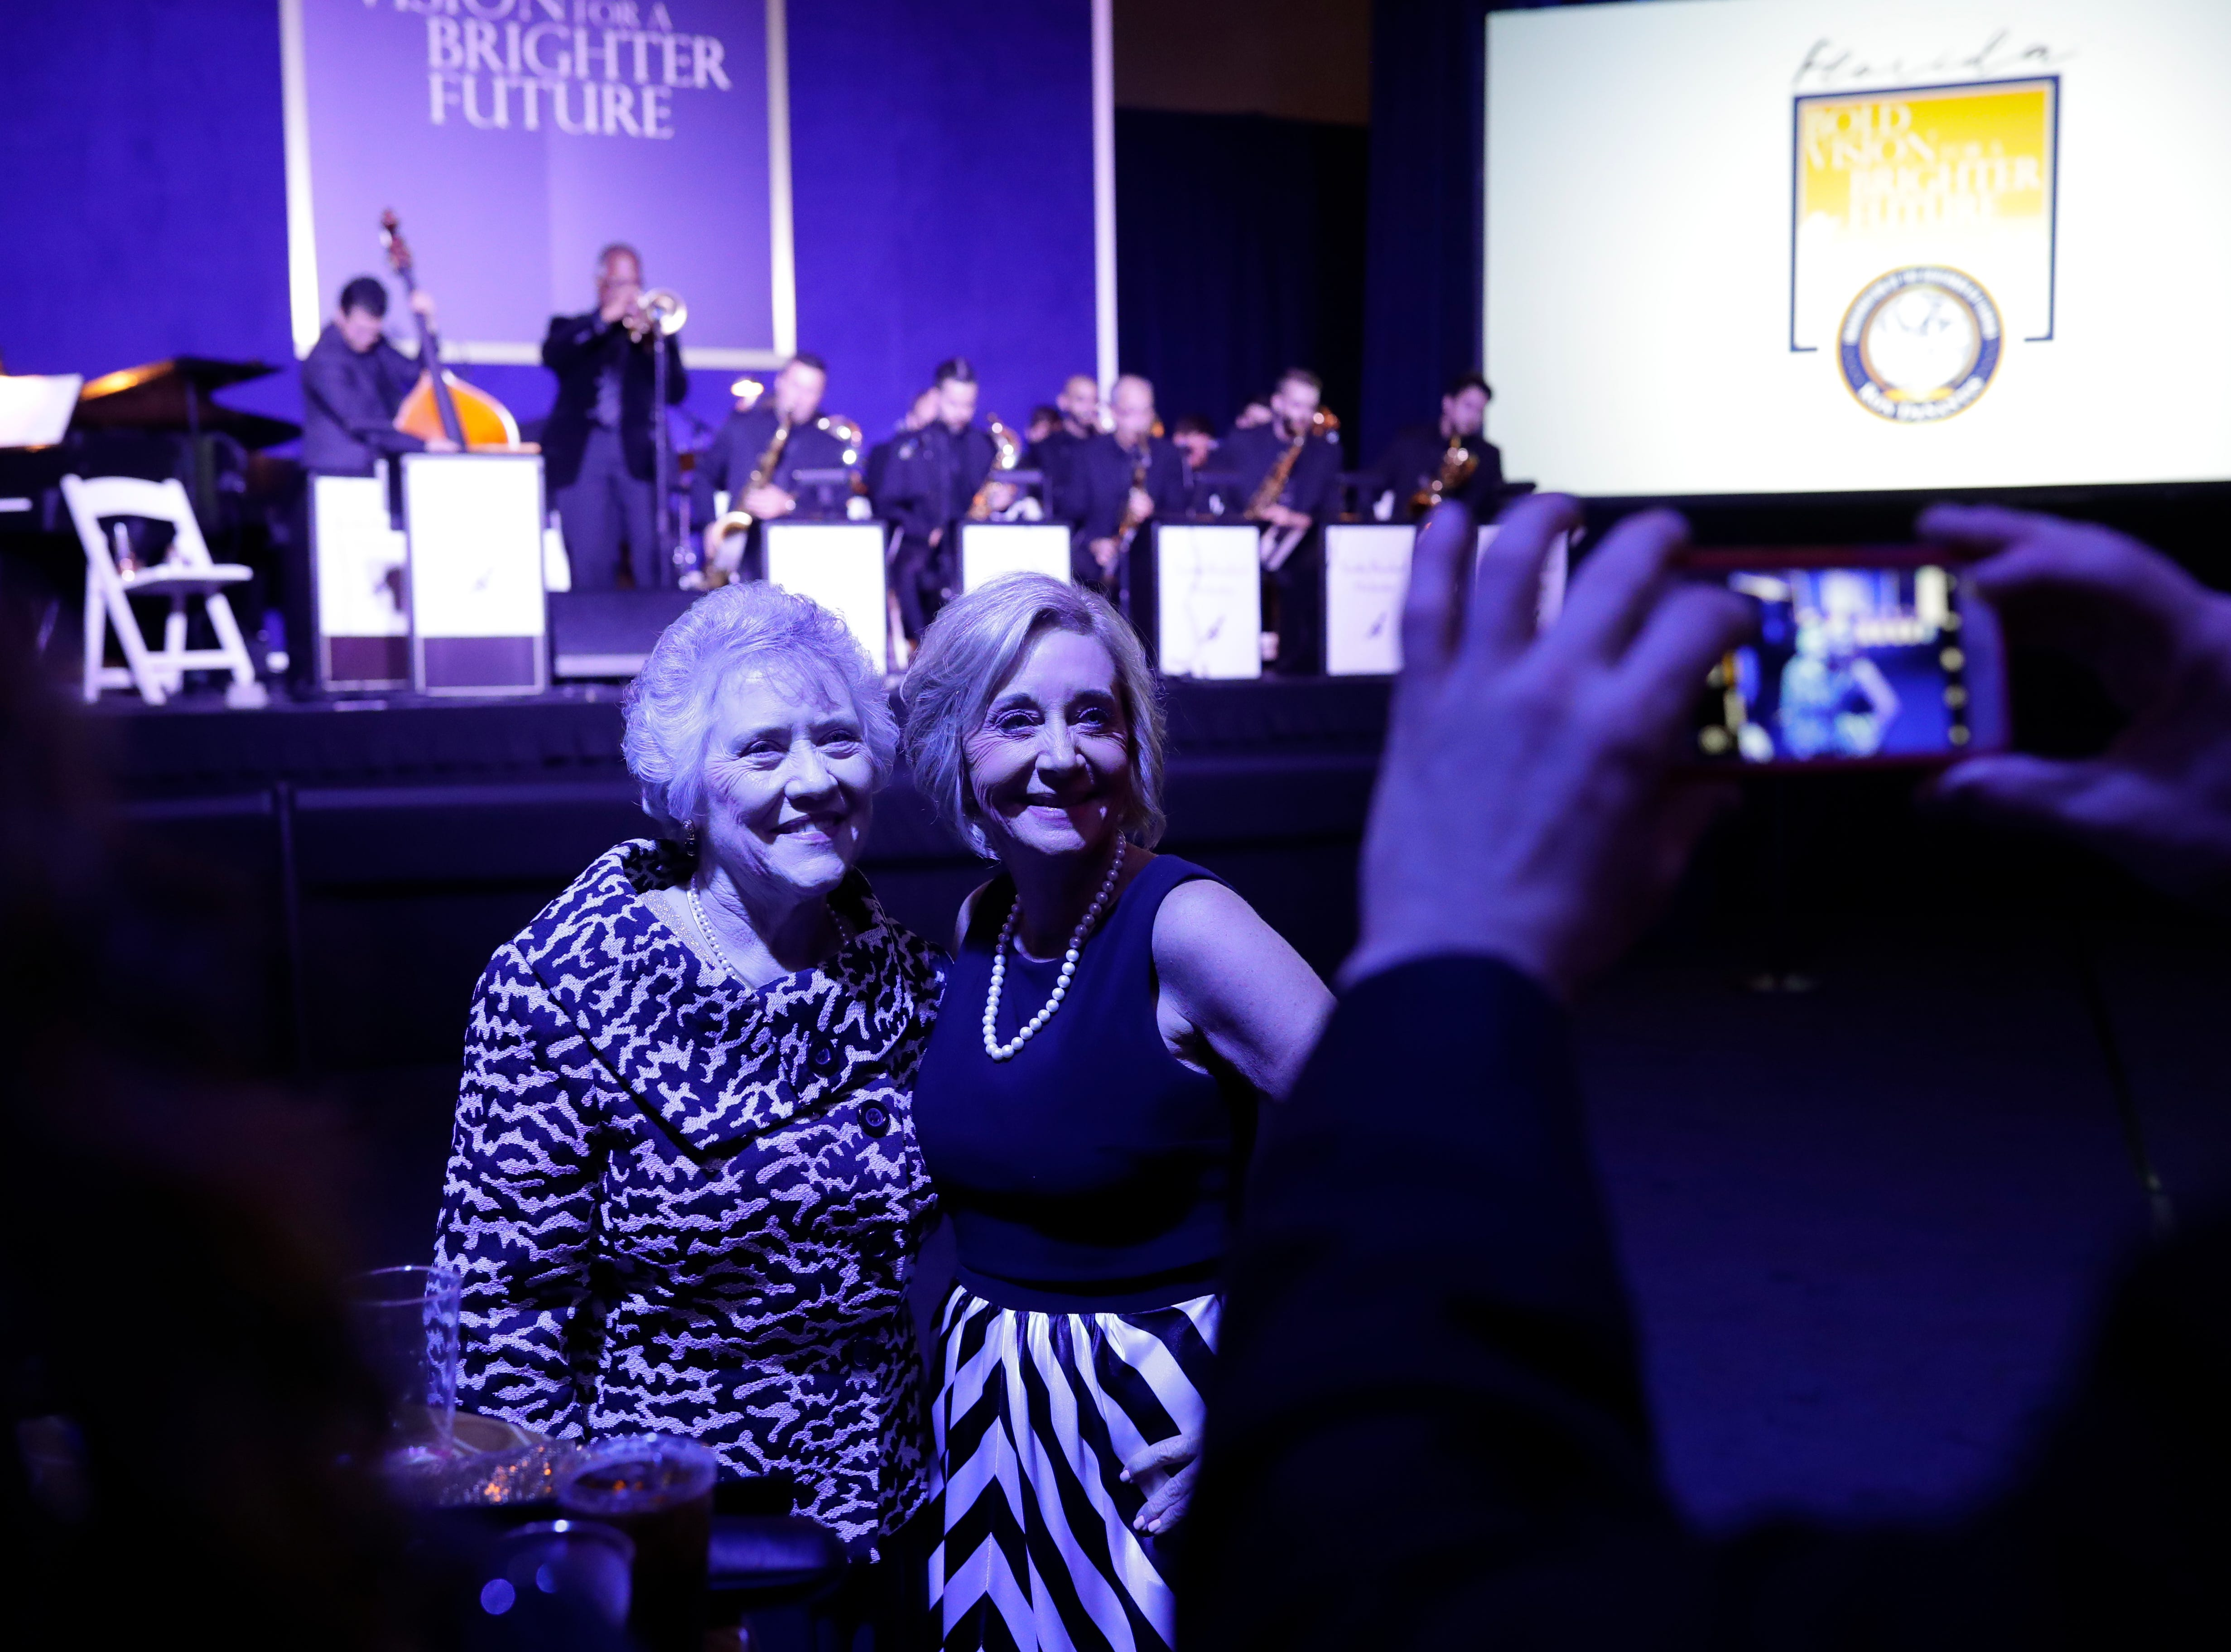 Hundreds of guests from all over Florida attend Florida's 46th Governor's Inaugural Ball at the Tucker Civic Center, Tuesday, Jan. 8, 2019. Guests pose for a photo in front of the musicians.